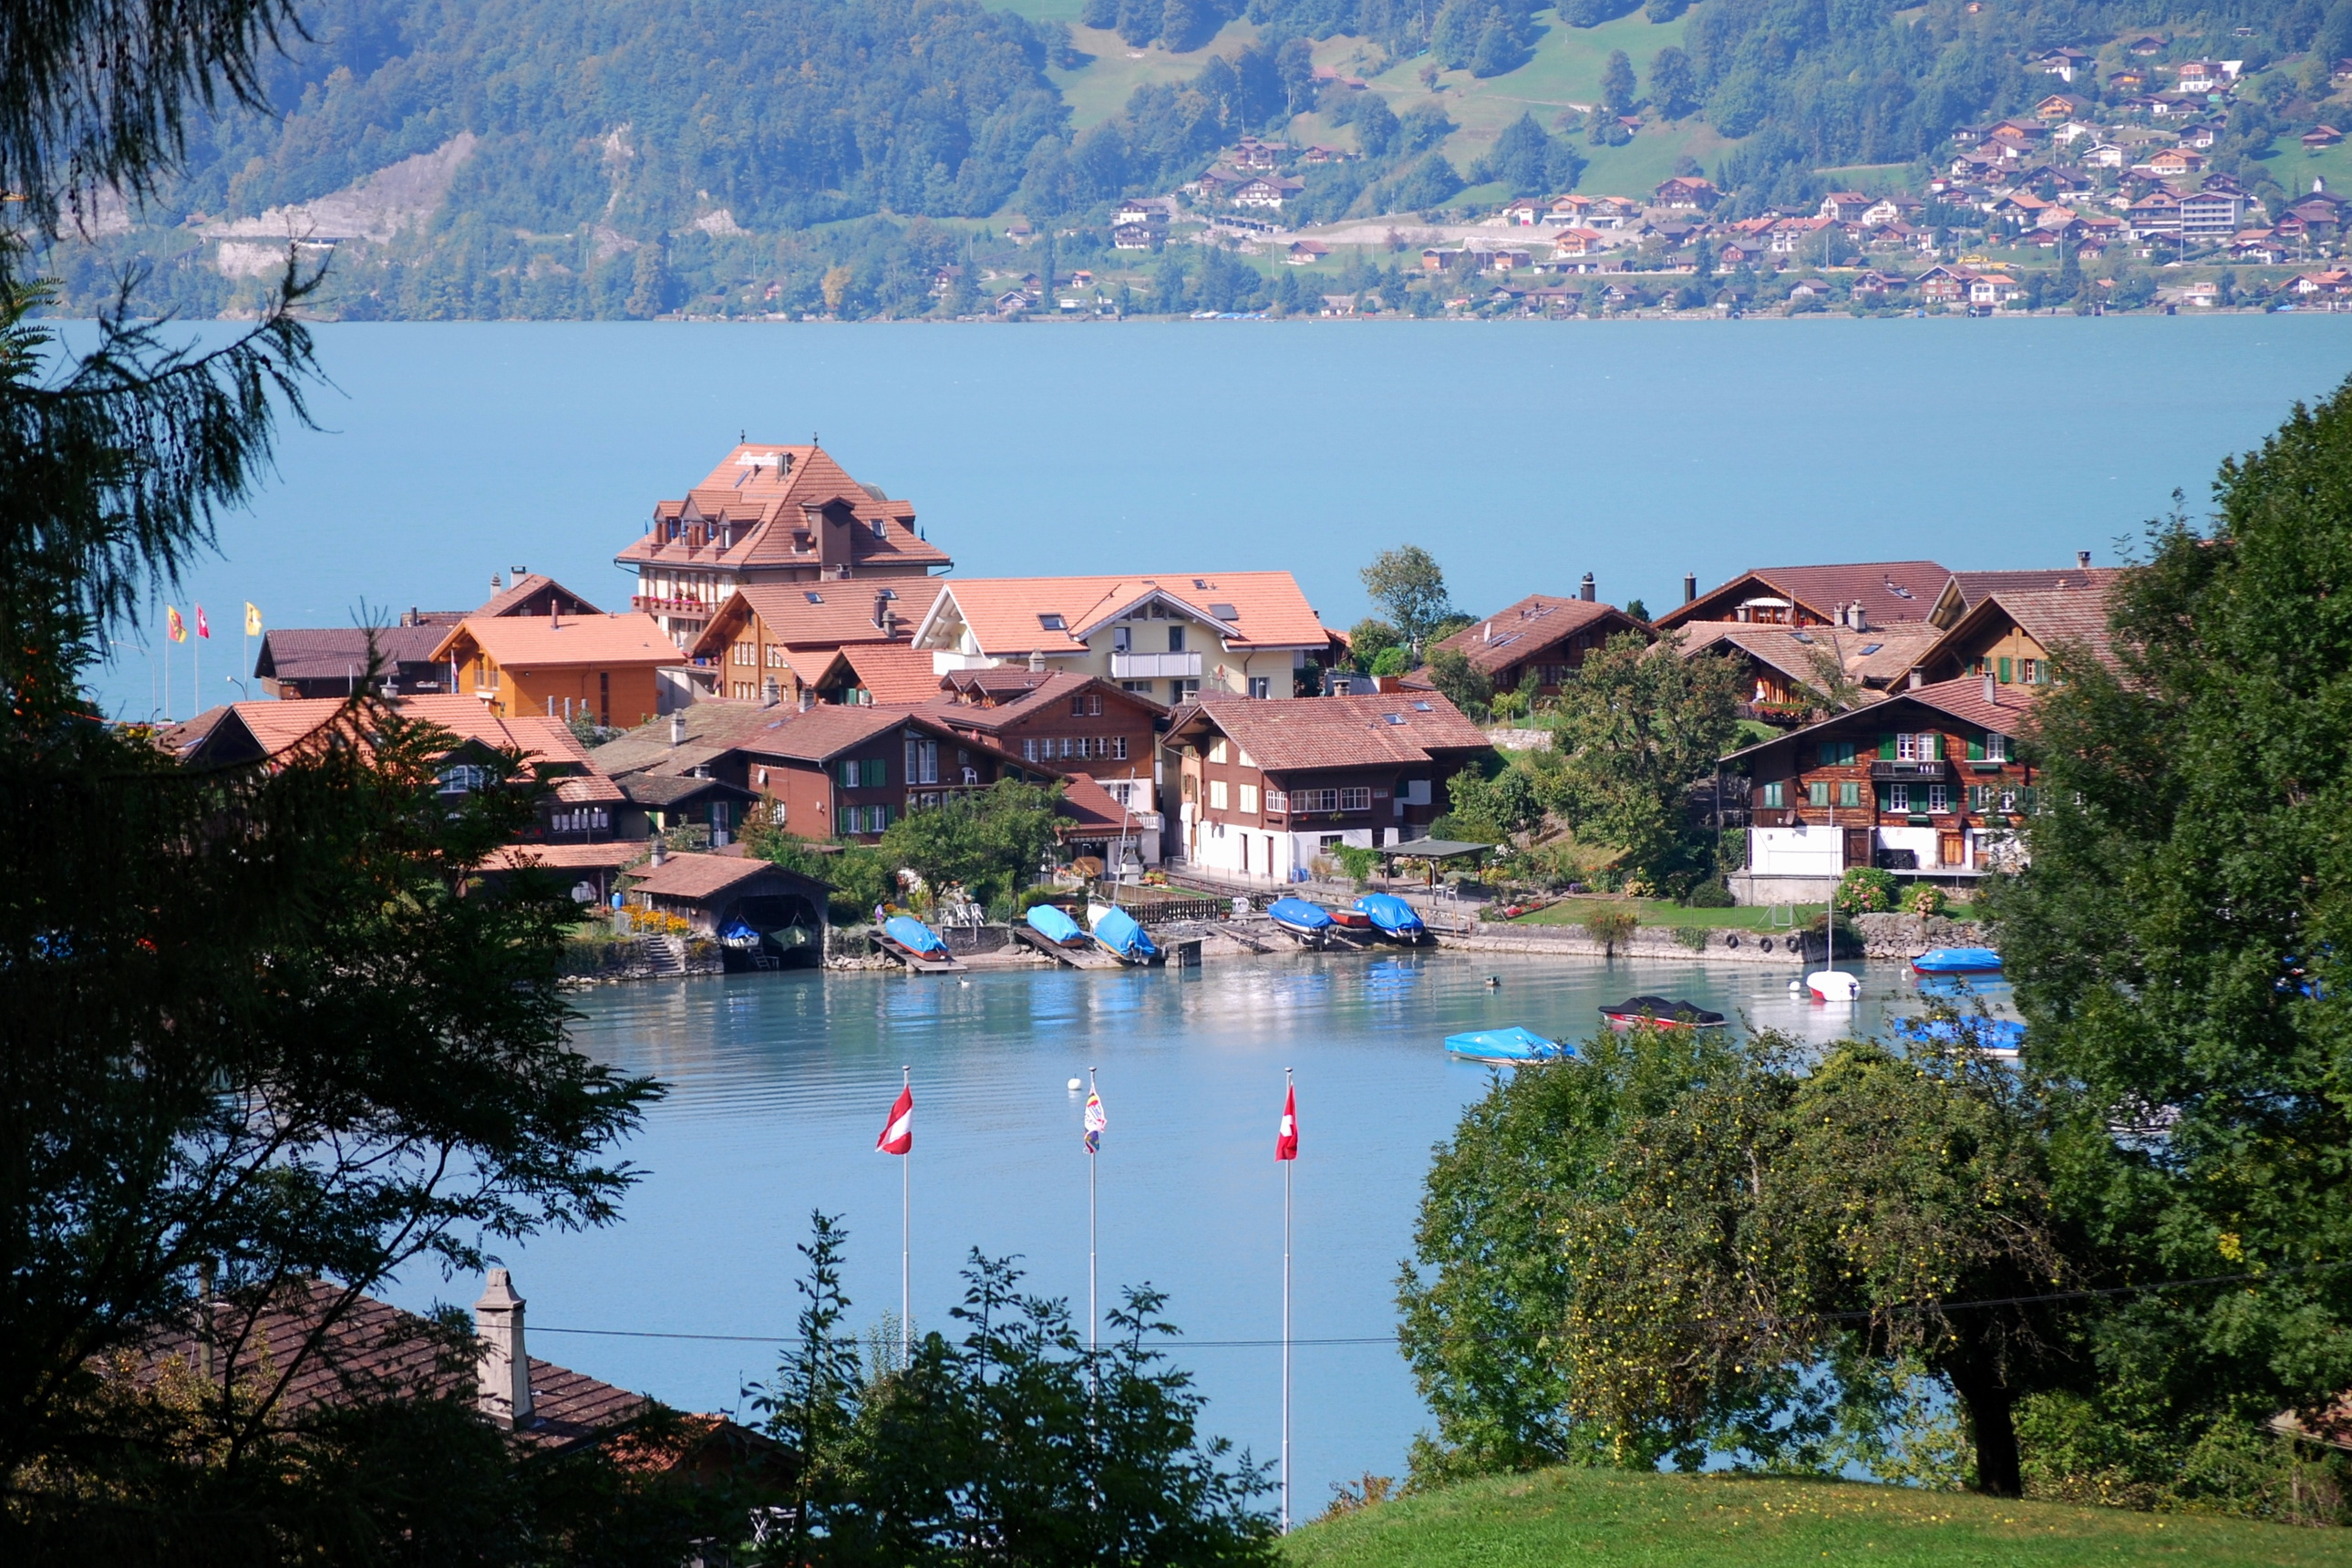 WallpaperMISC - Canton of Bern HD Wallpaper 3 - 2580 X 1720 Free TOP ...